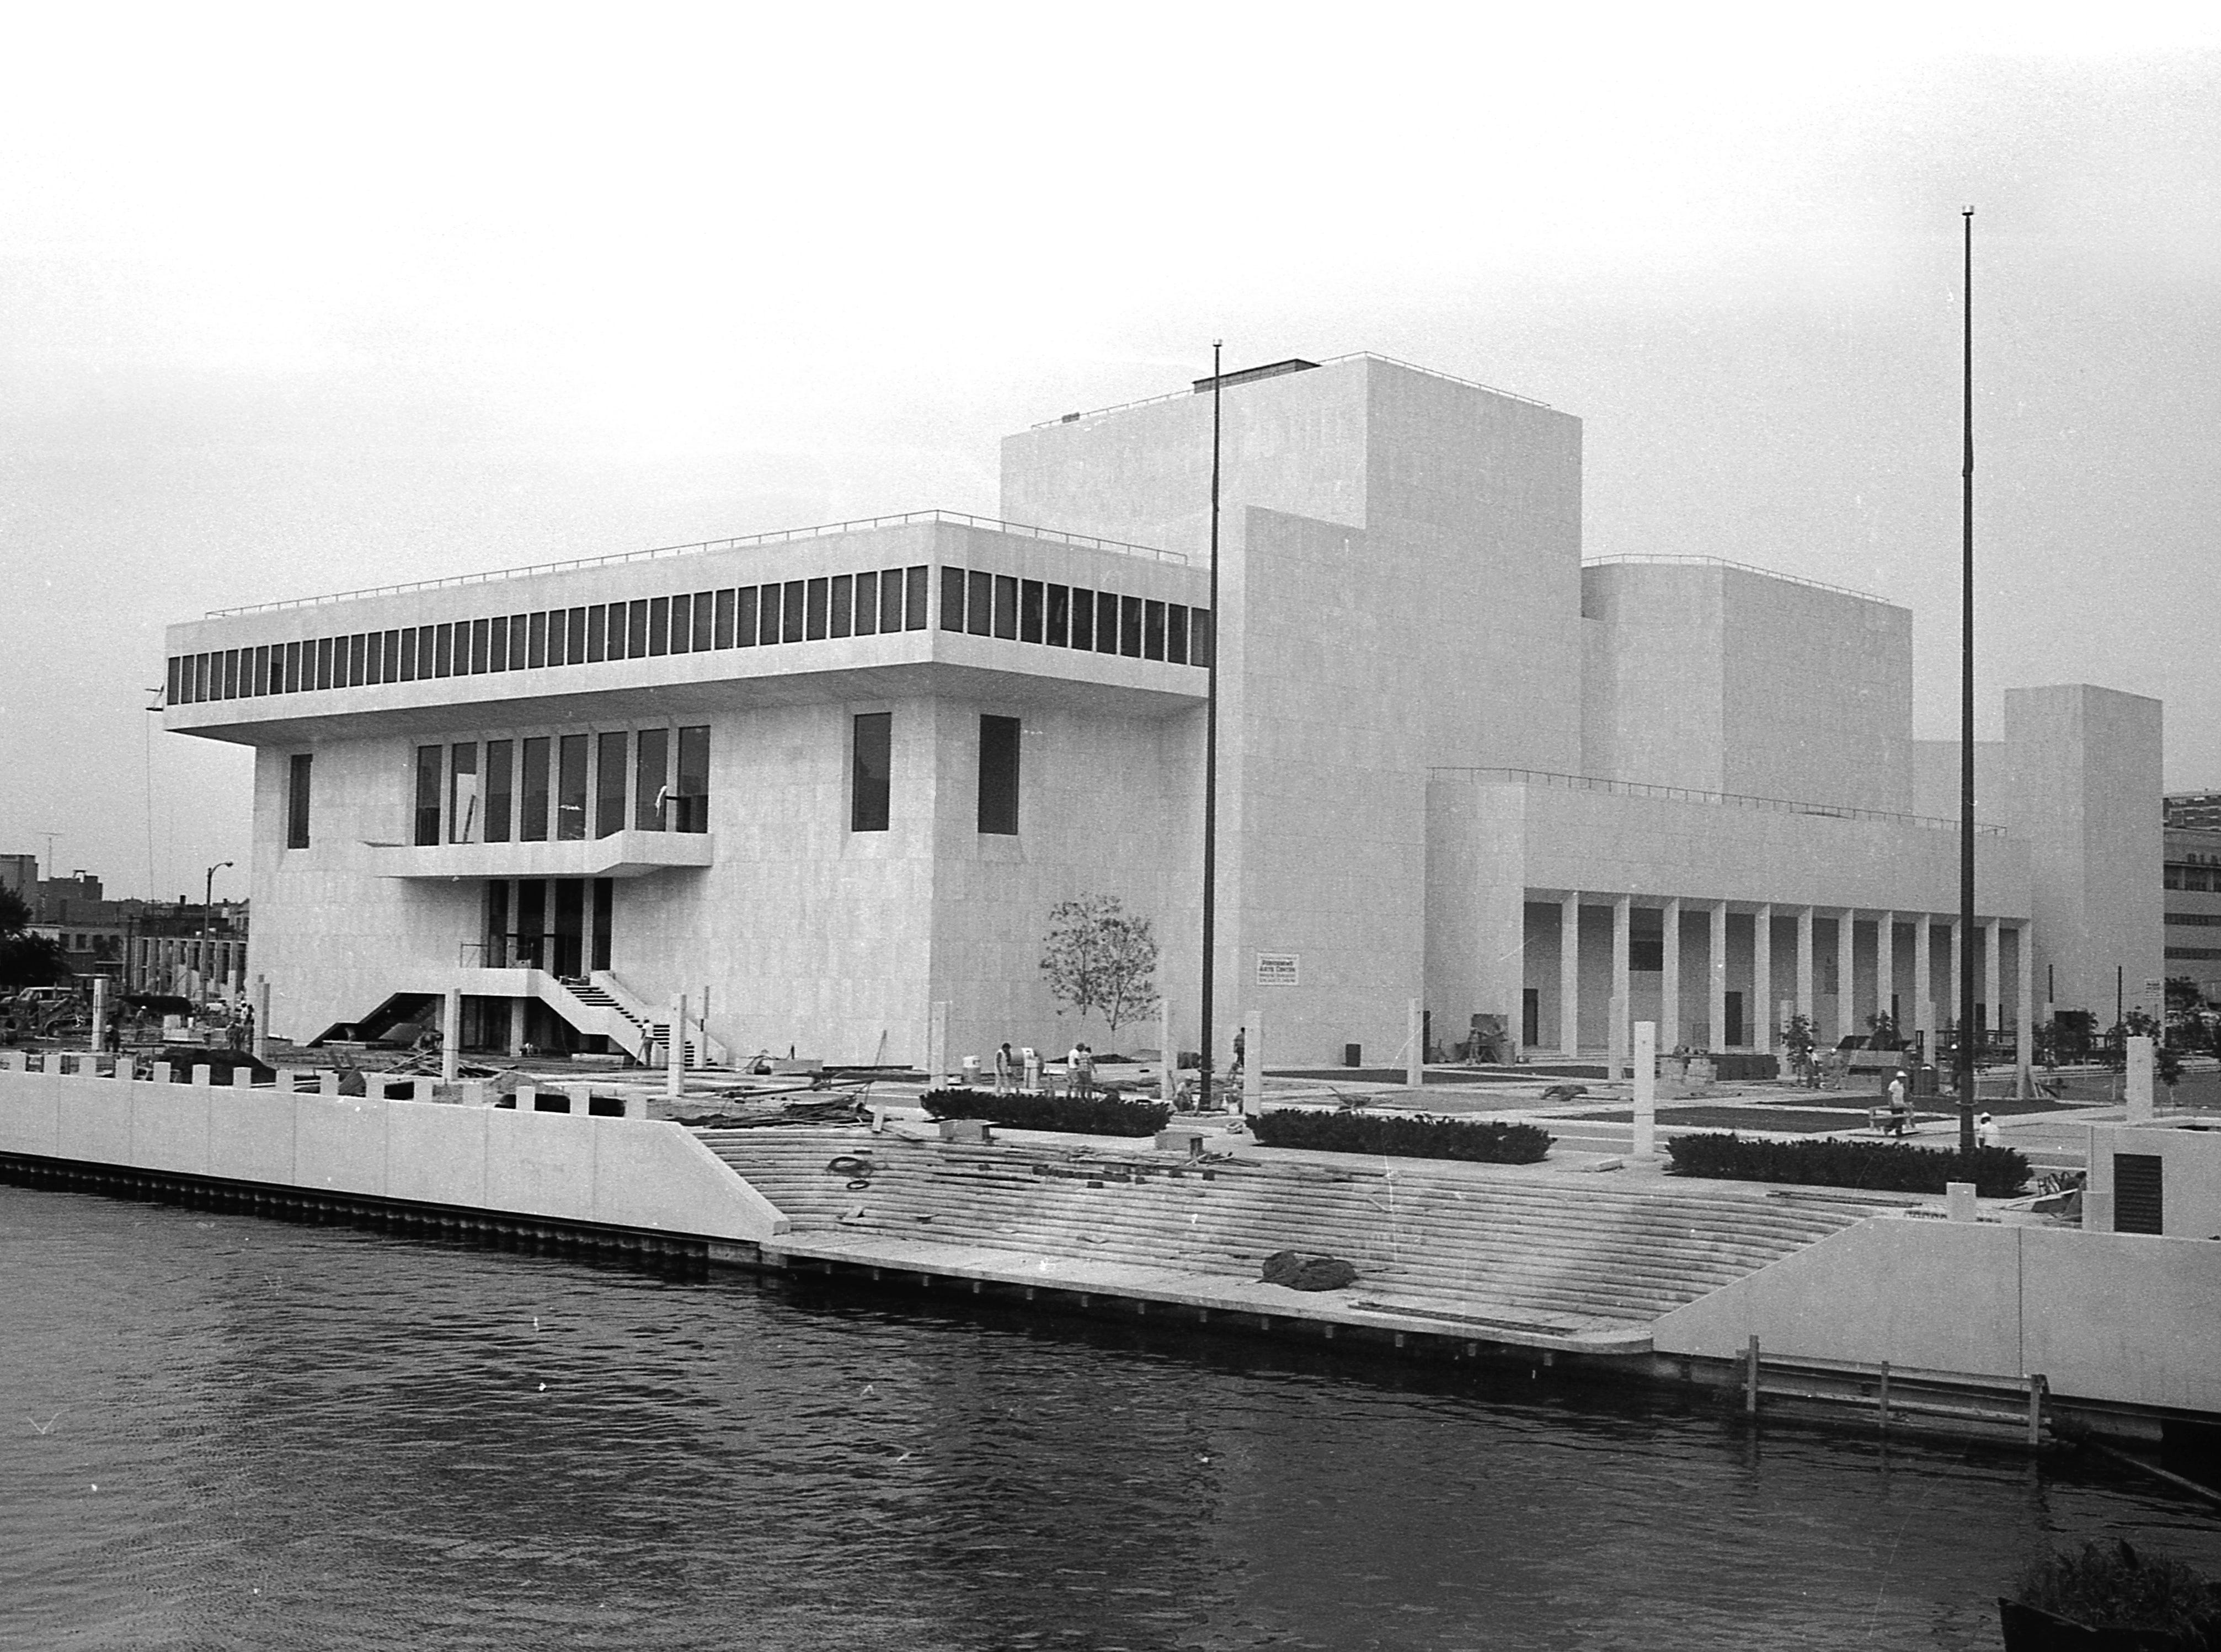 35mm film negative of the new Milwaukee Performing Arts Center (now known as the Marcus Center for the Performing Arts) or PAC at 929 N. Water St. Construction began on June 27, 1966. This photo shows the southwest exterior looking from the Kilbourn Ave. bridge.   Photo was filed 10/7/1969. Neg #69546 exterior, building, music, performance, stage, theater, Uihlein Hall, Todd Wehr hall, Peck Pavilion.